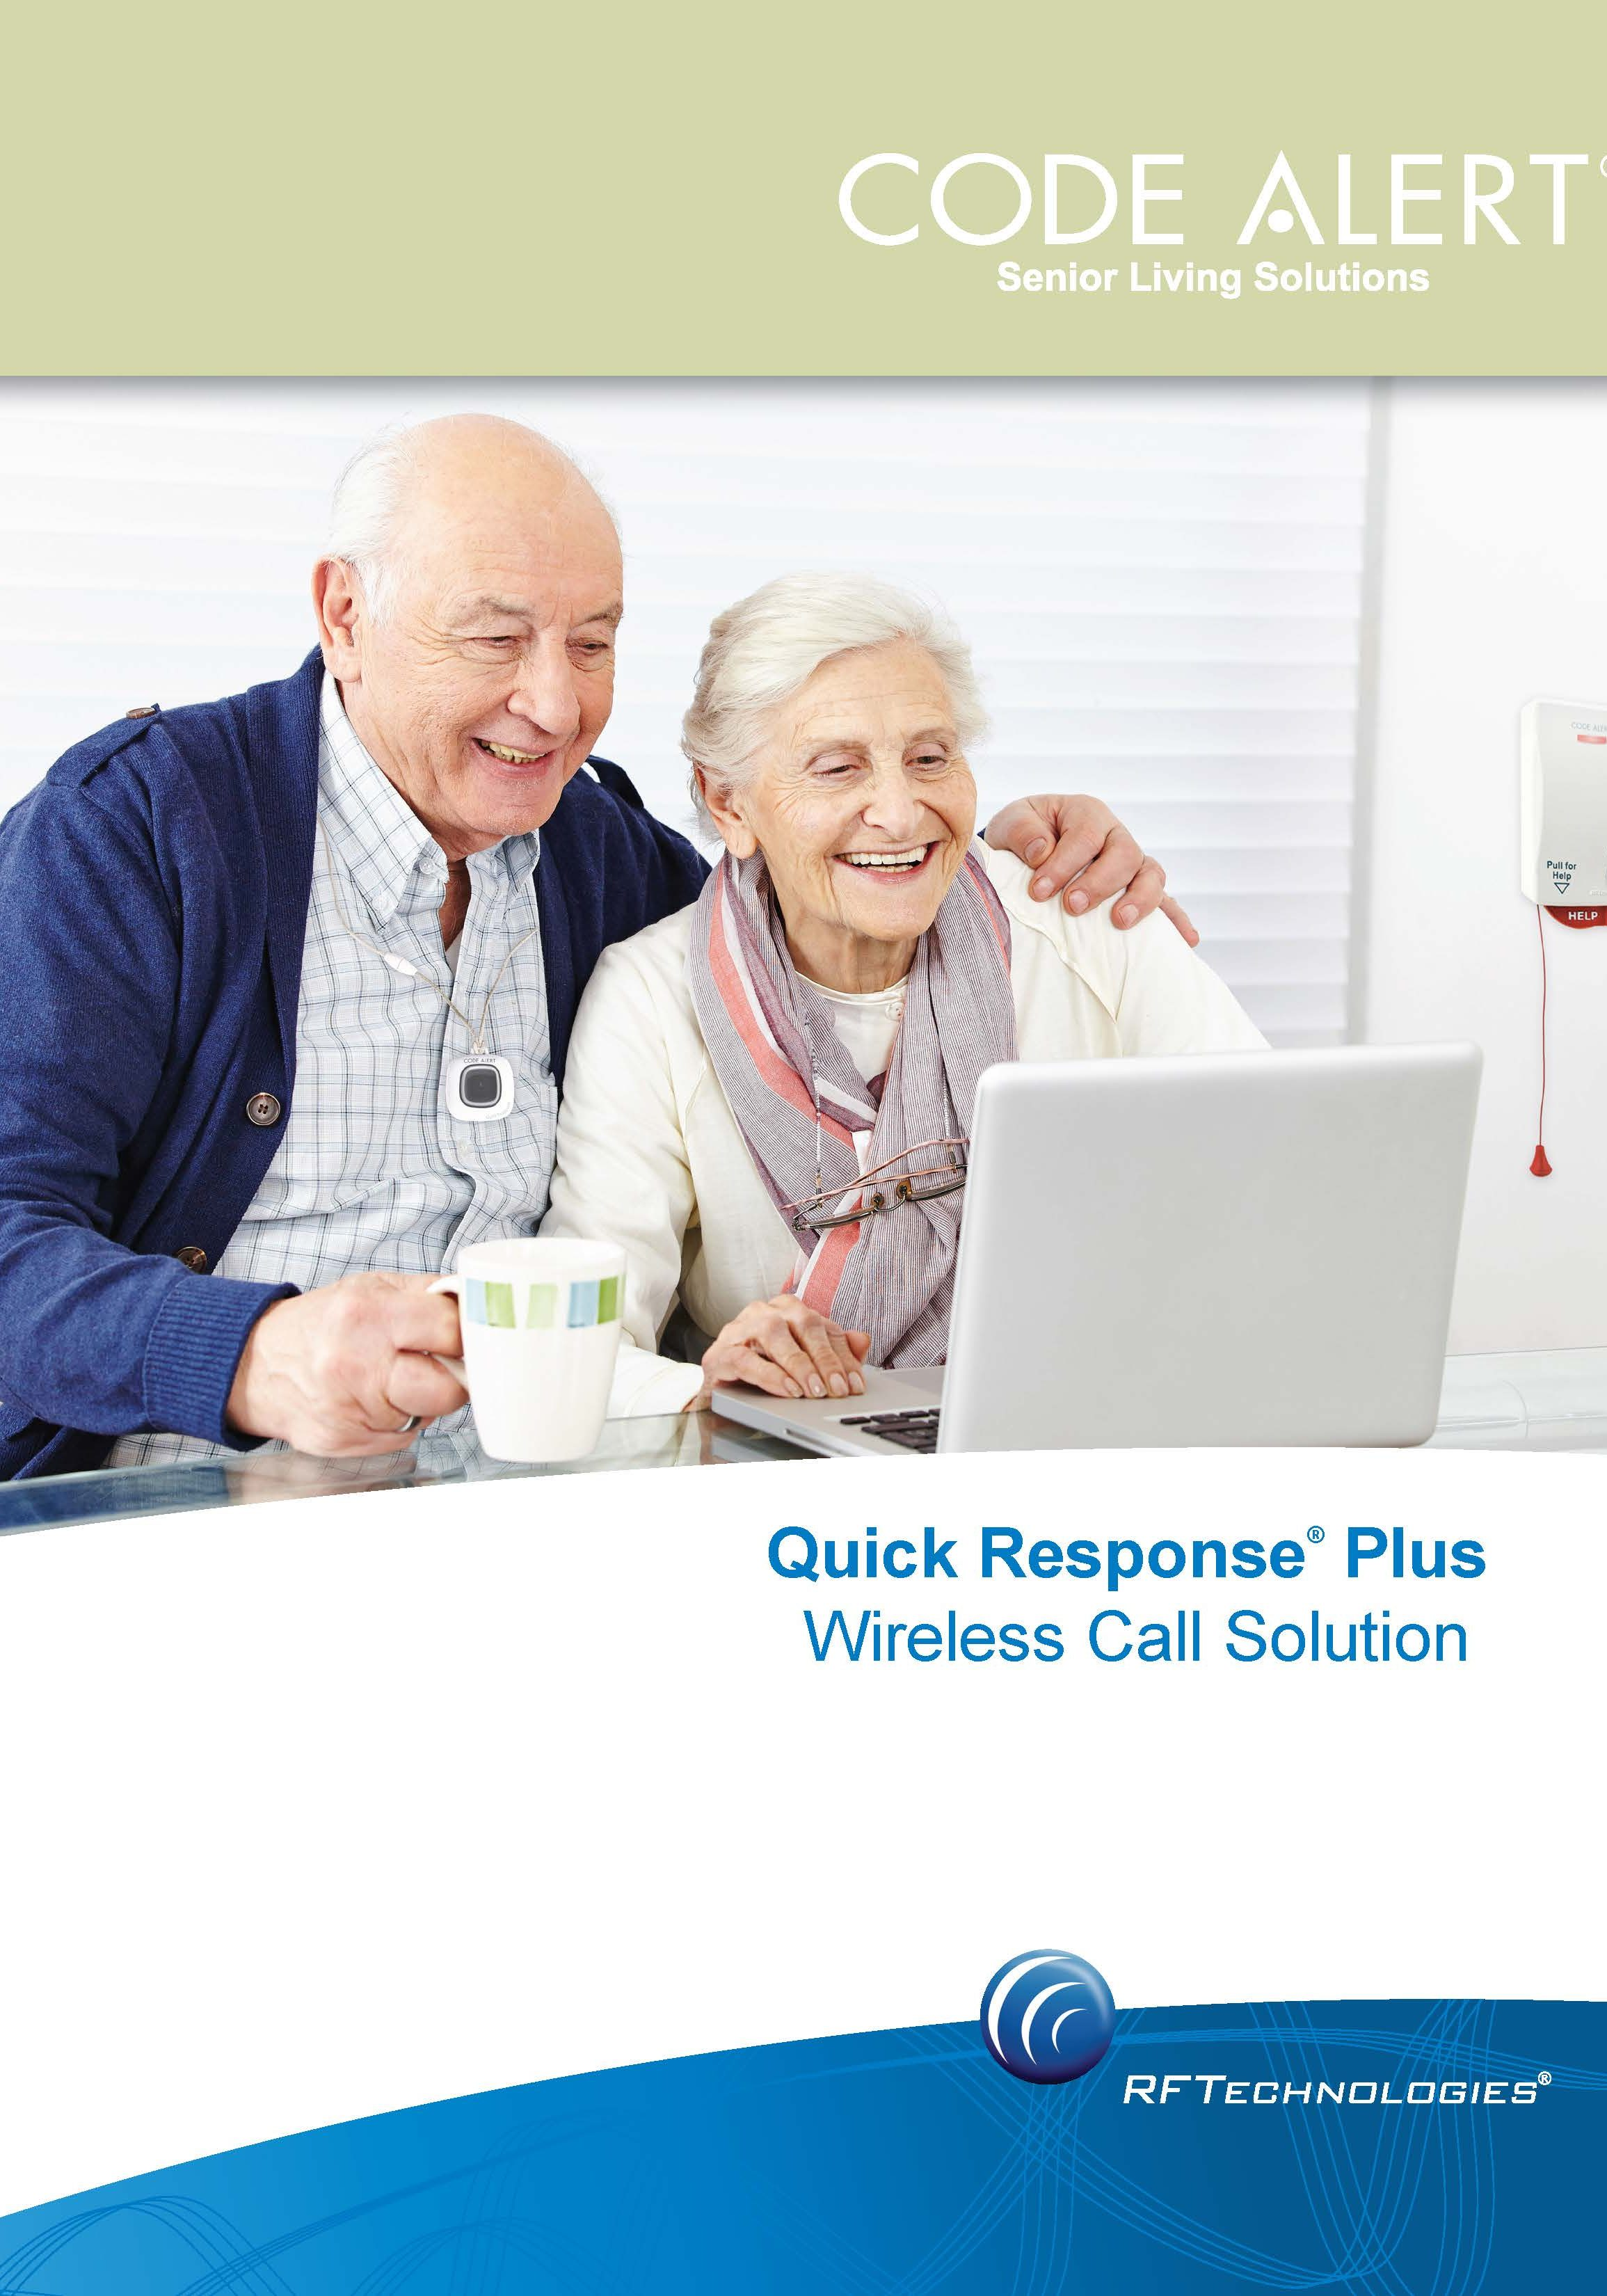 Quick Response Plus Wireless Call Solution